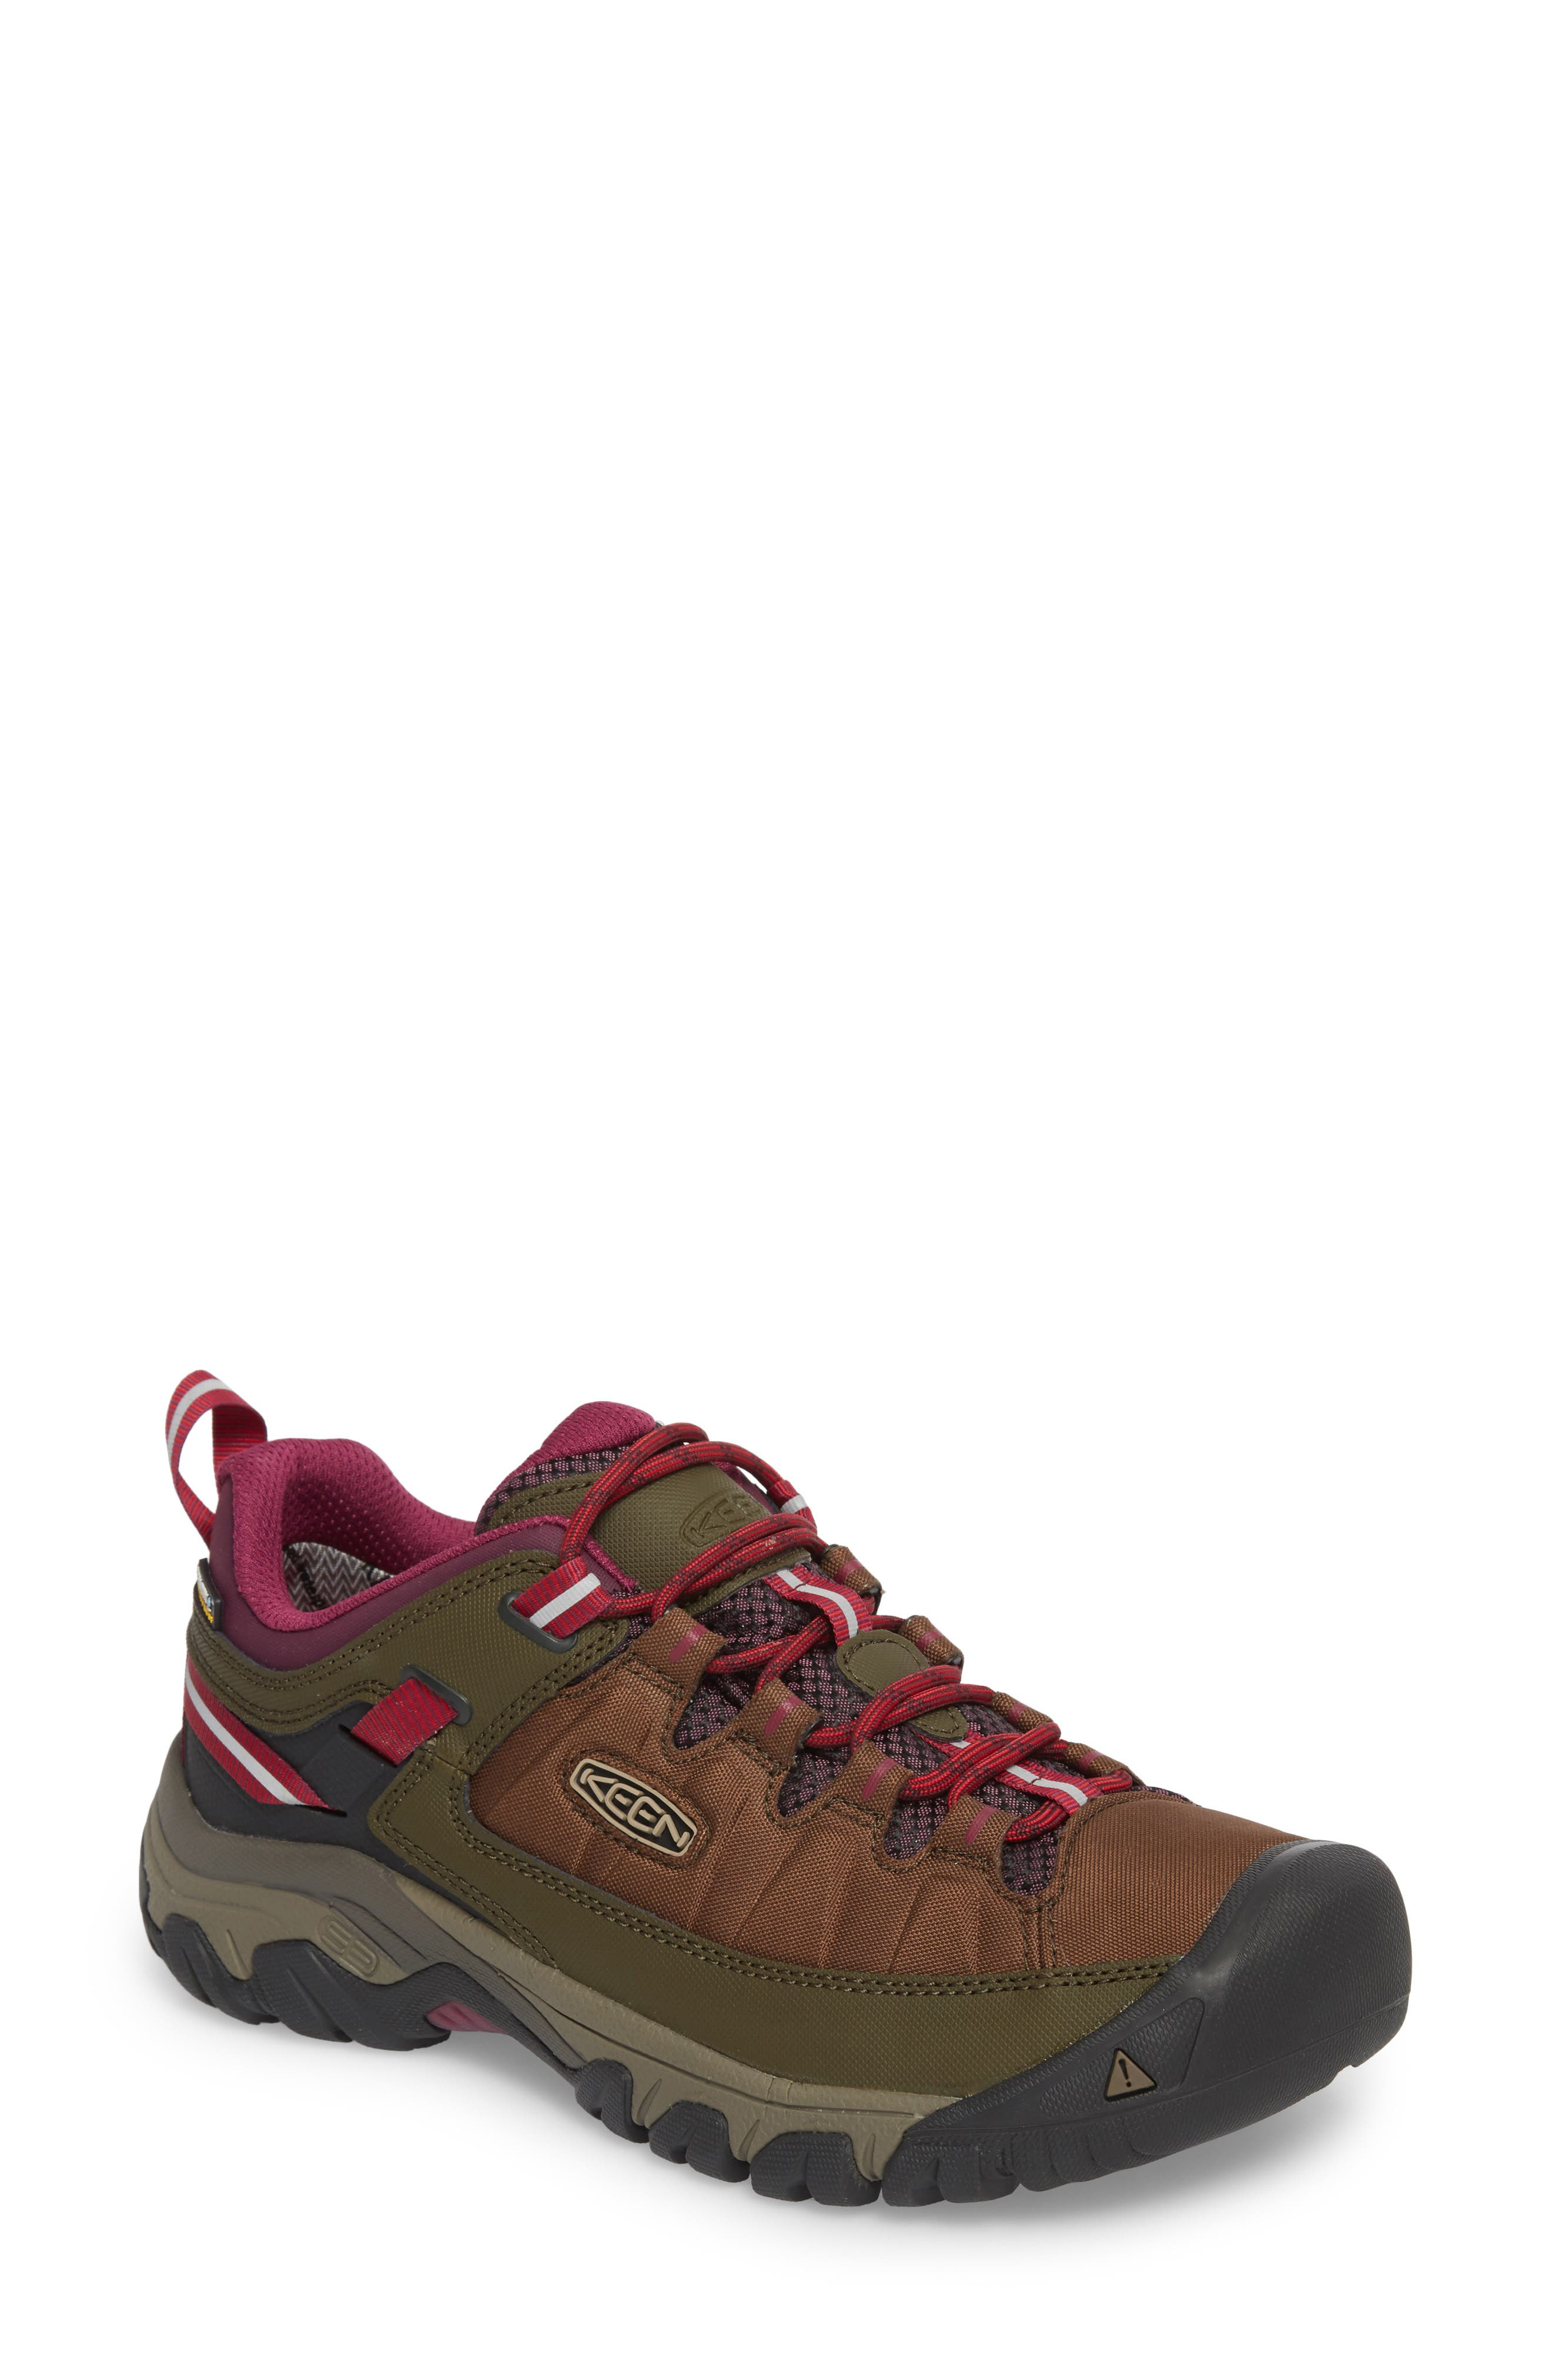 Main Image - Keen Targhee EXP Waterproof Hiking Shoe (Women)